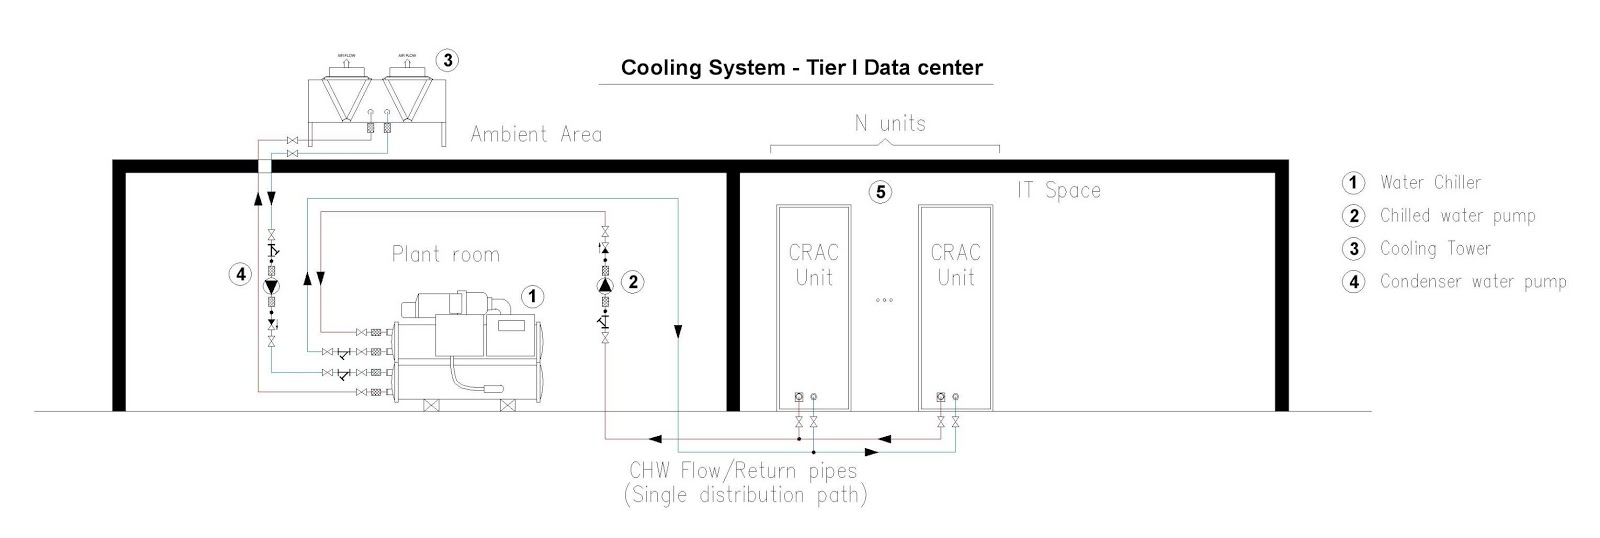 hight resolution of 02 a tier i water system crac unit contain single or more running capacity components this includes a combination of water chiller cooling tower